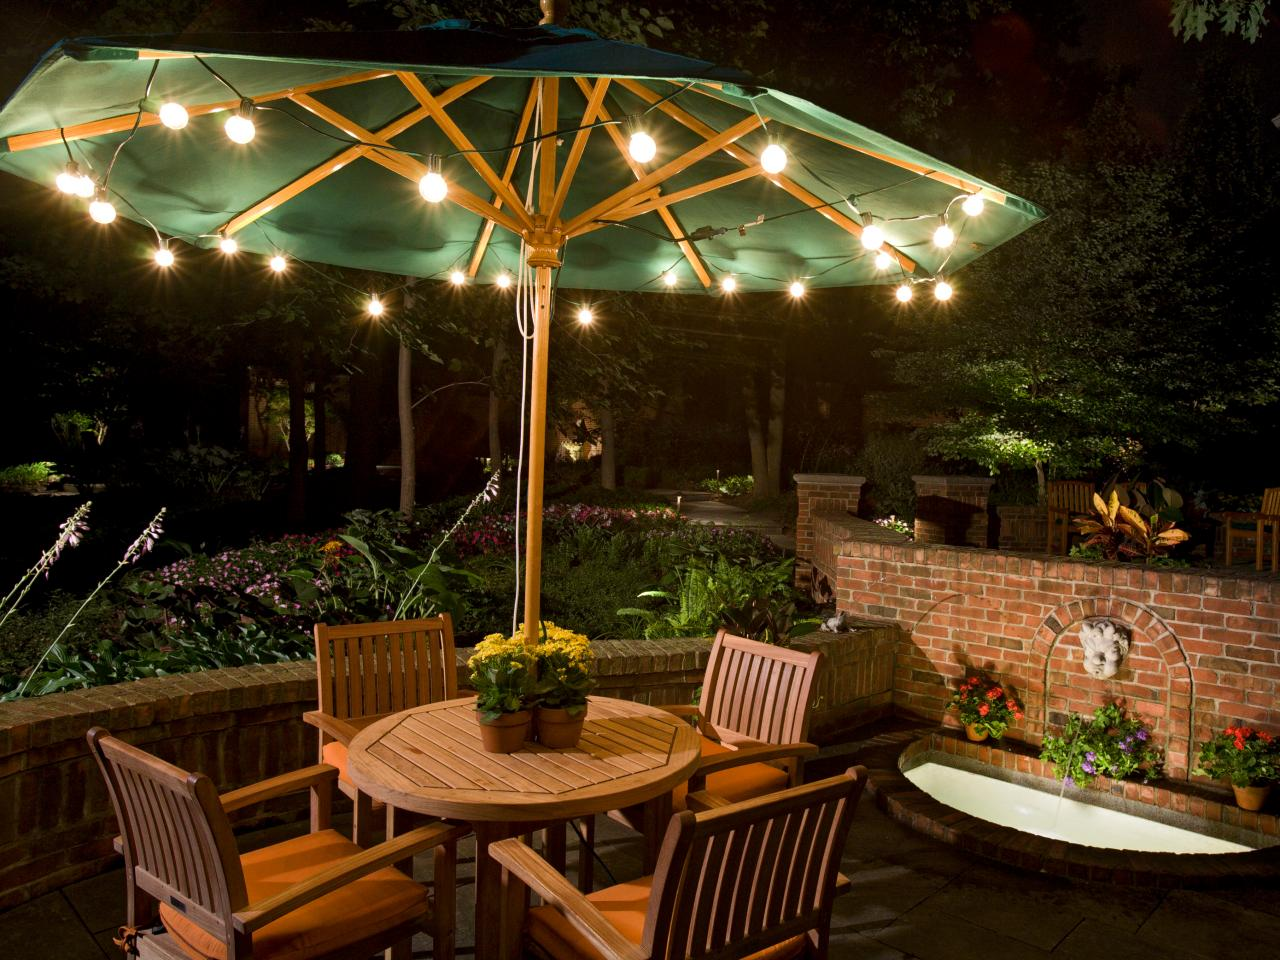 Delightful Outdoor Lighting For Patio Part - 2: Outdoor Landscape Lighting